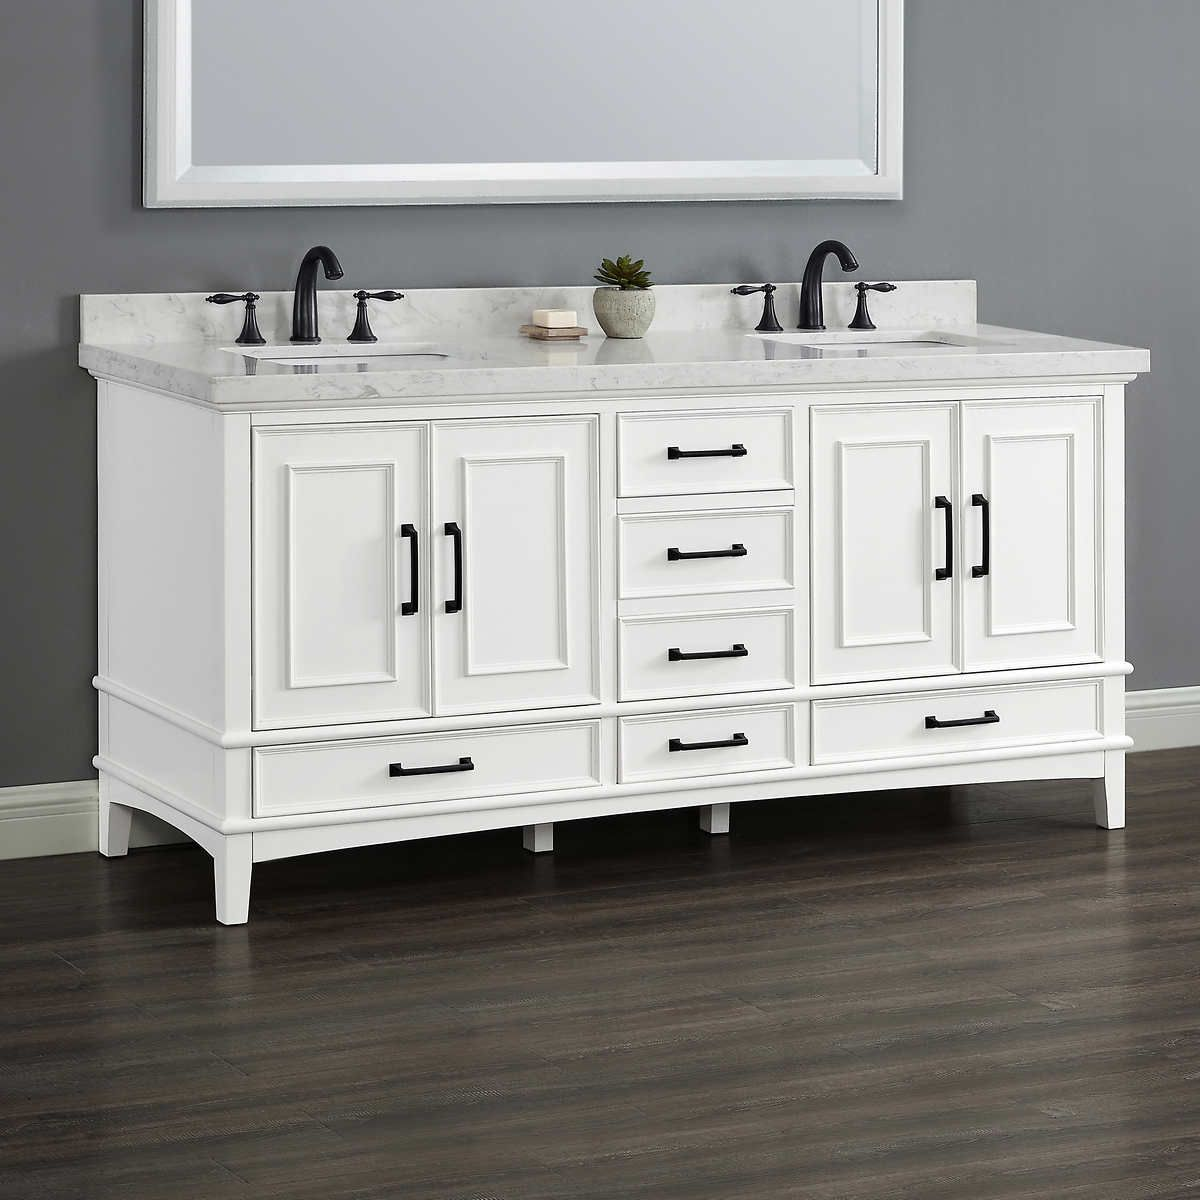 Pin By Kristina Stout On Bathrooms Double Sink Vanity Vanity Sink Vanity